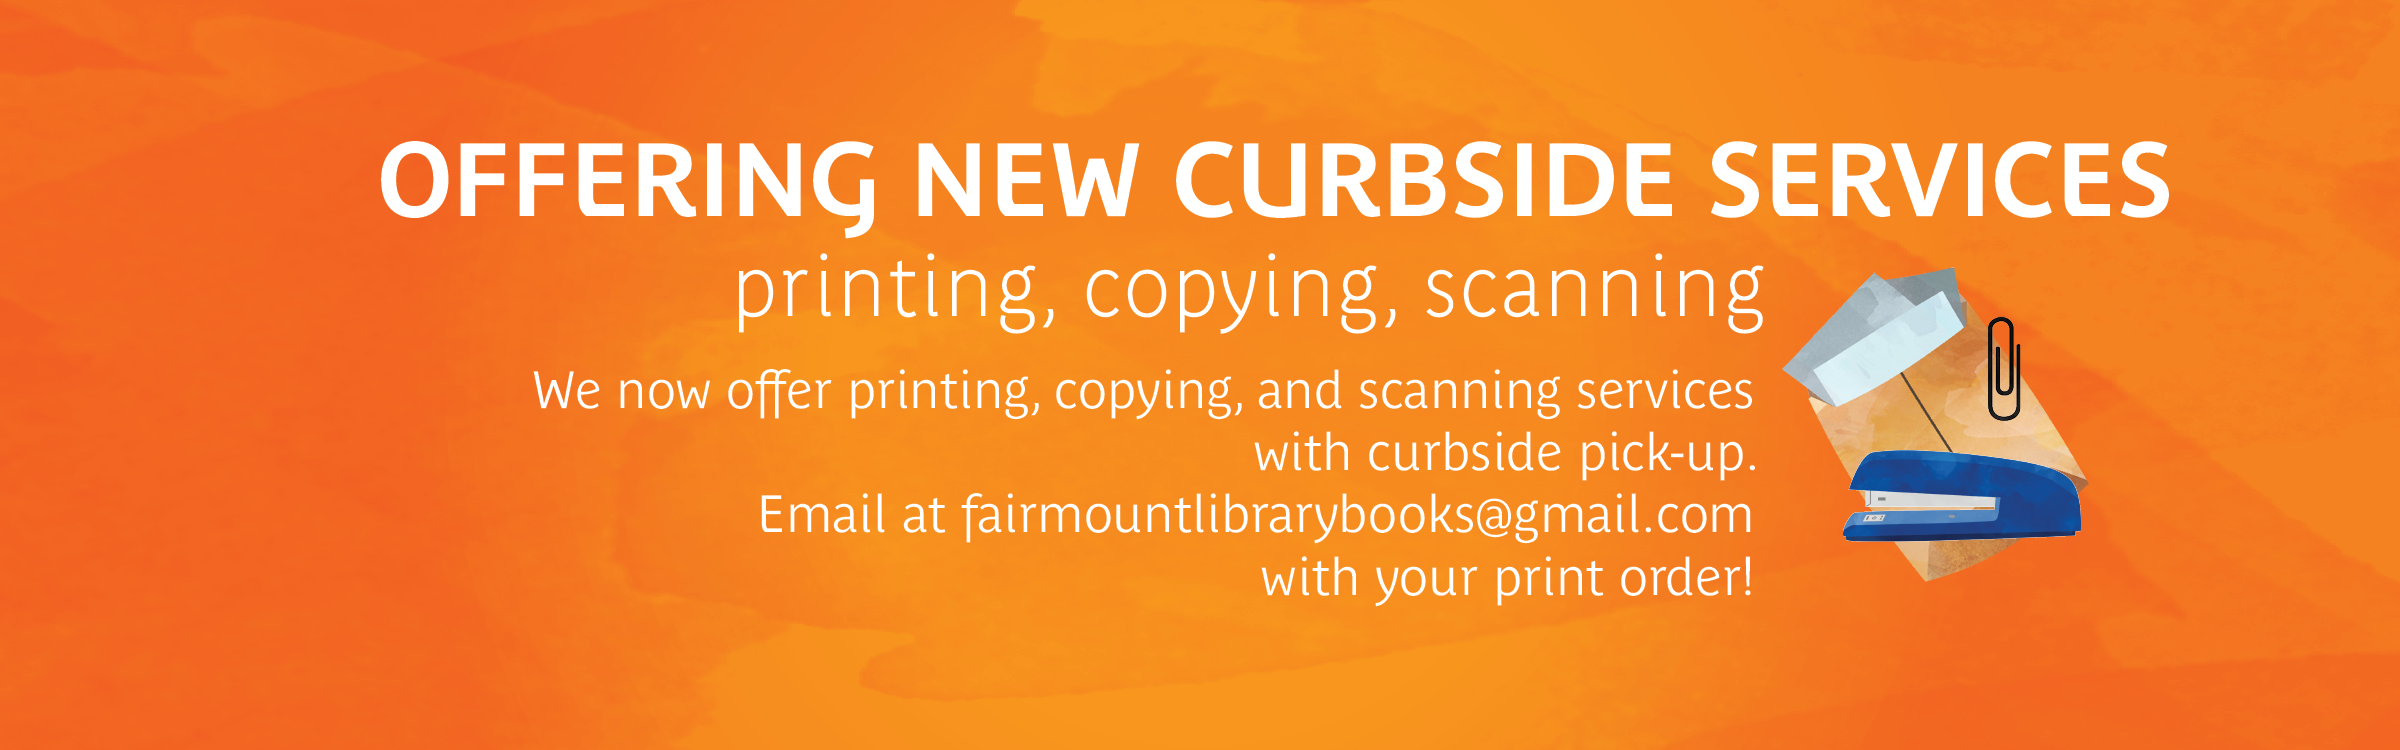 Now offering curb-side services! Printing, copying and scanning. Email for order